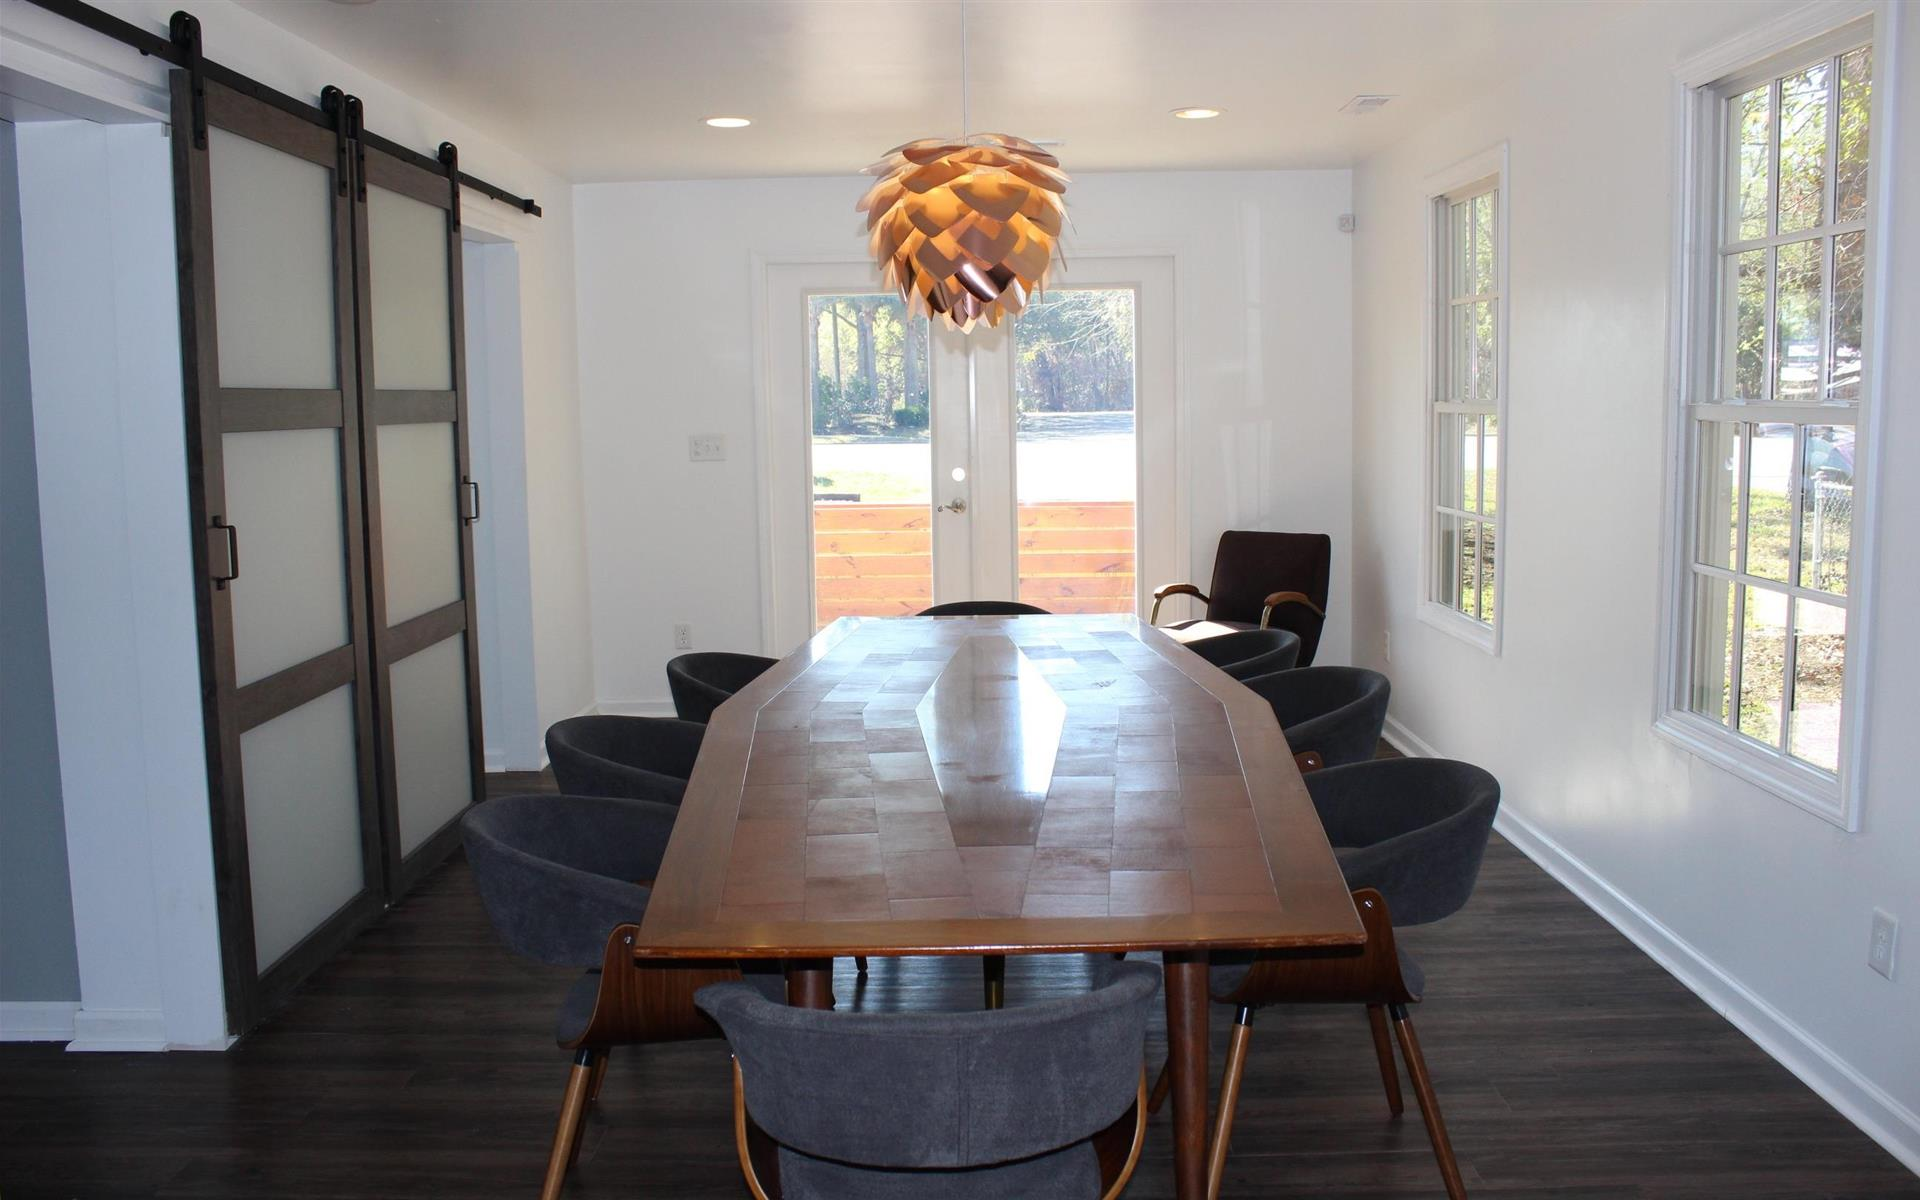 The Works, James Island - Large Conference Room